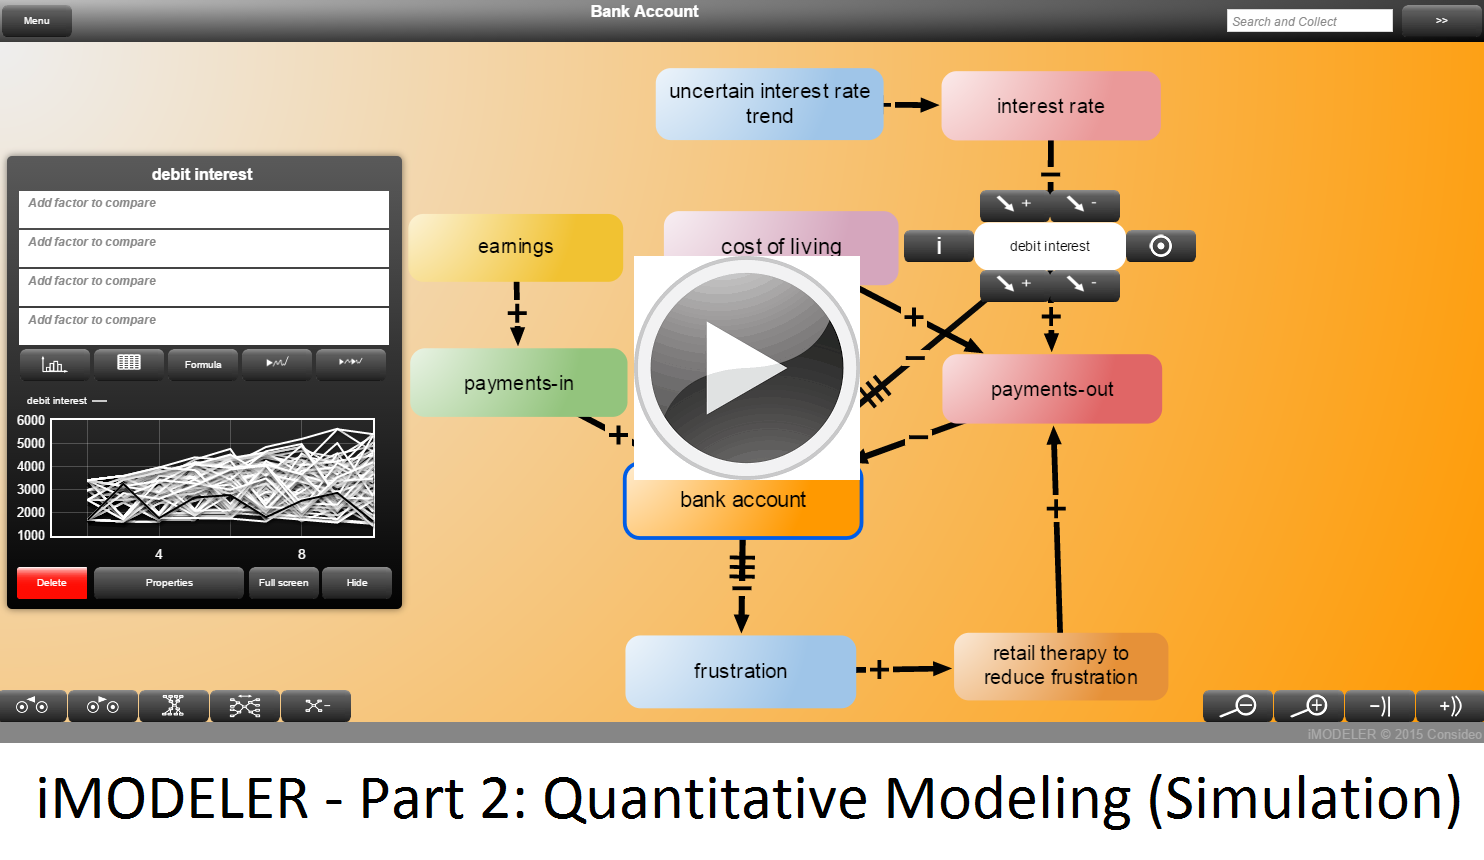 iMODELER - Part 2: Quantitative Modeling (Simulation)